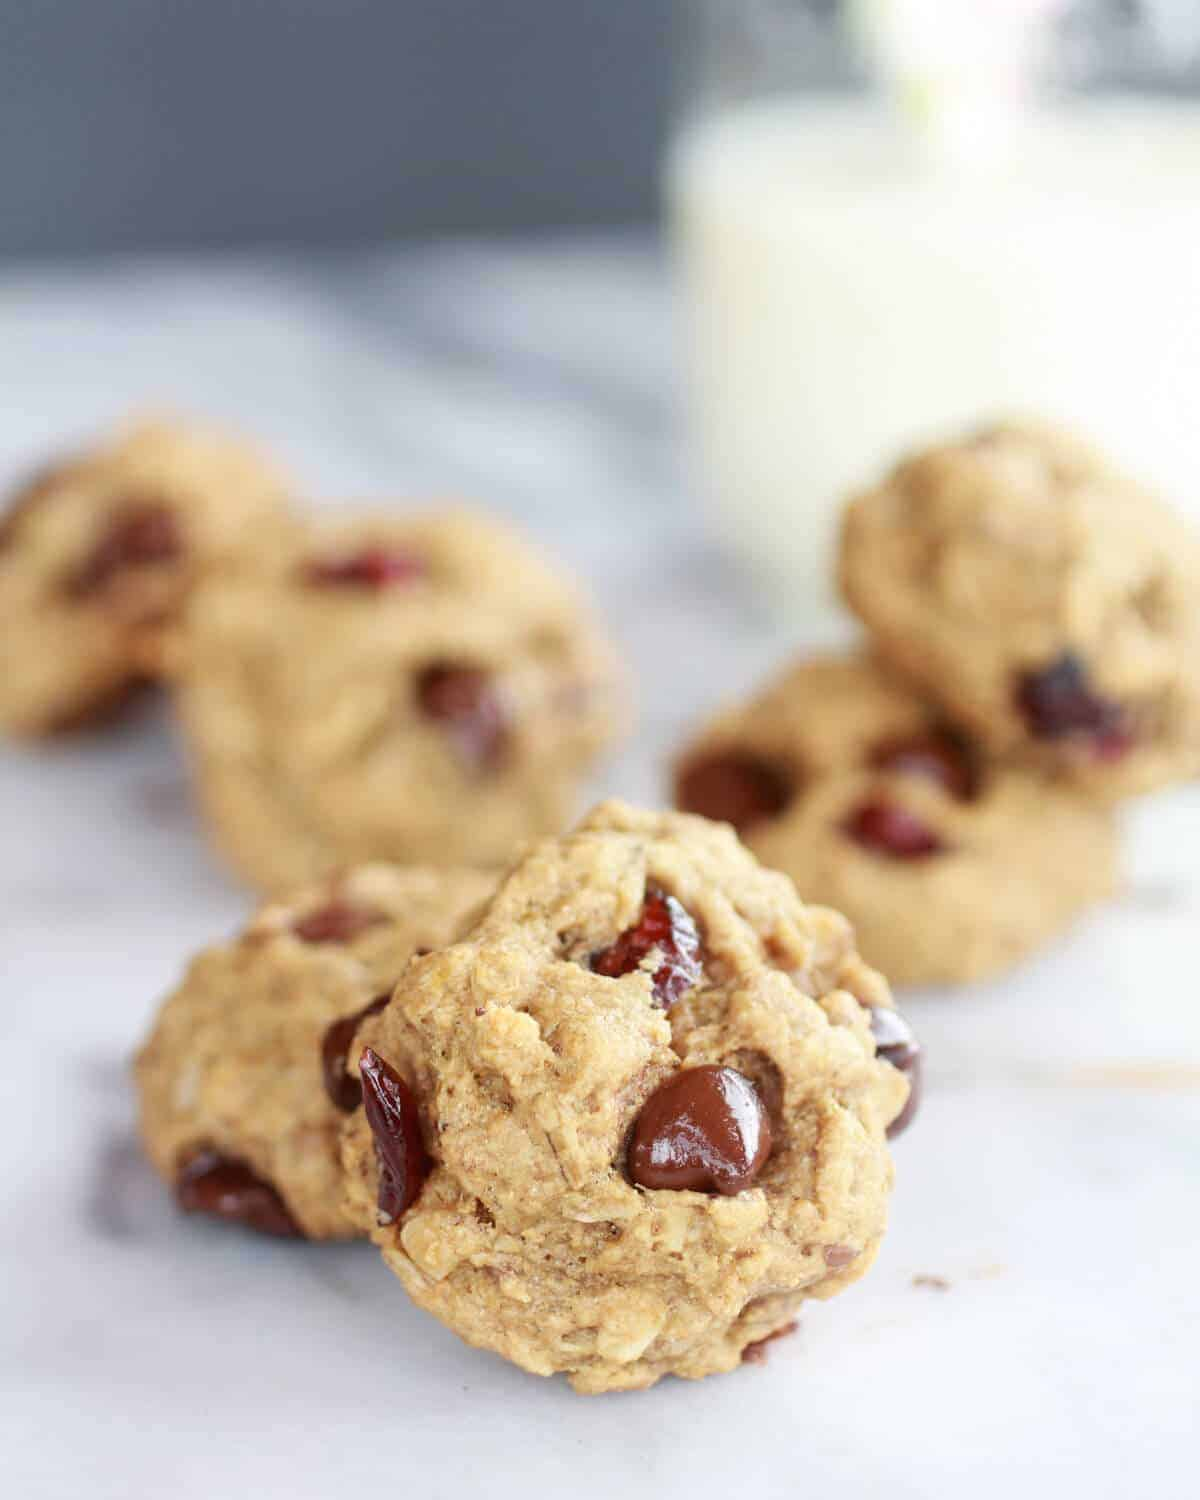 Super Healthy Breakfast (or anytime) Cookies.